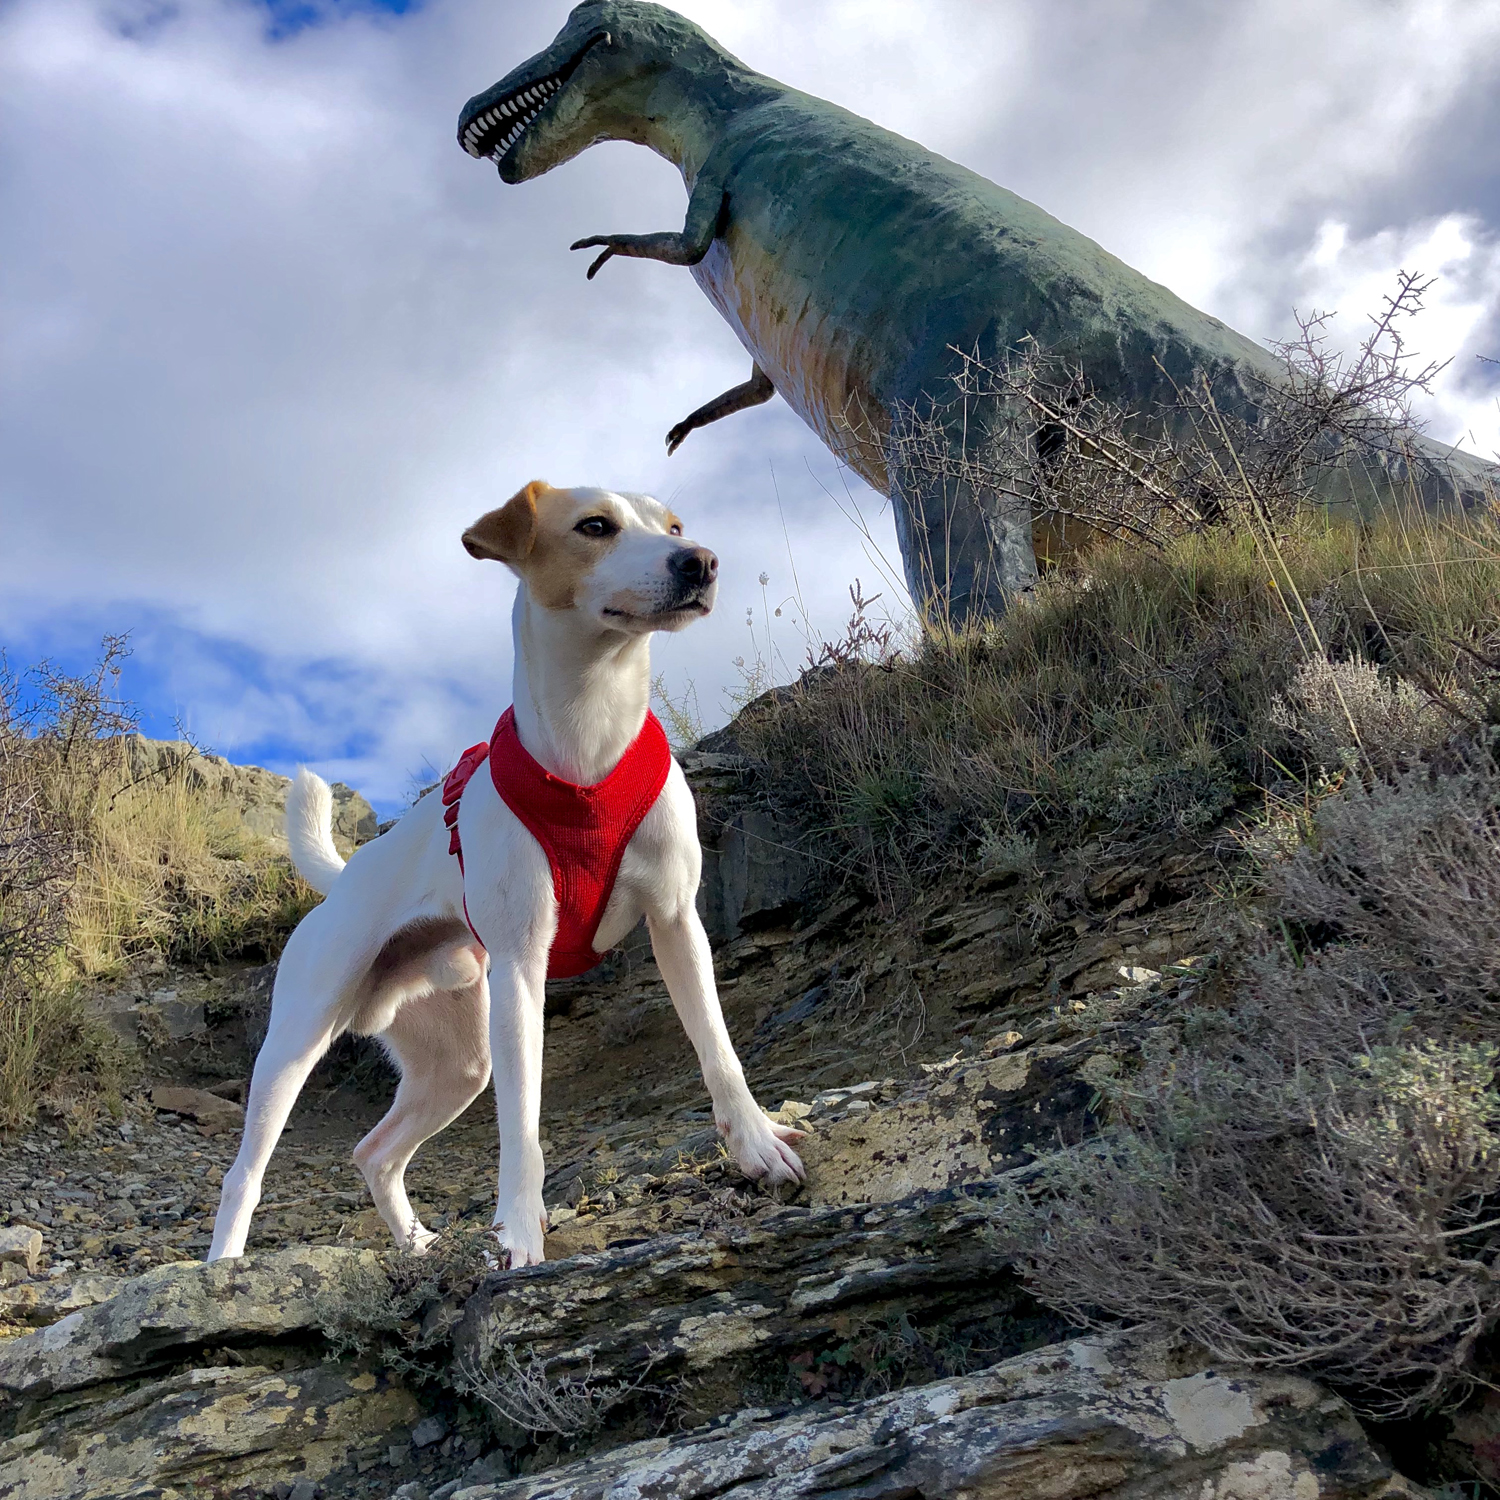 On the Route of Dinosaurs of Enciso.